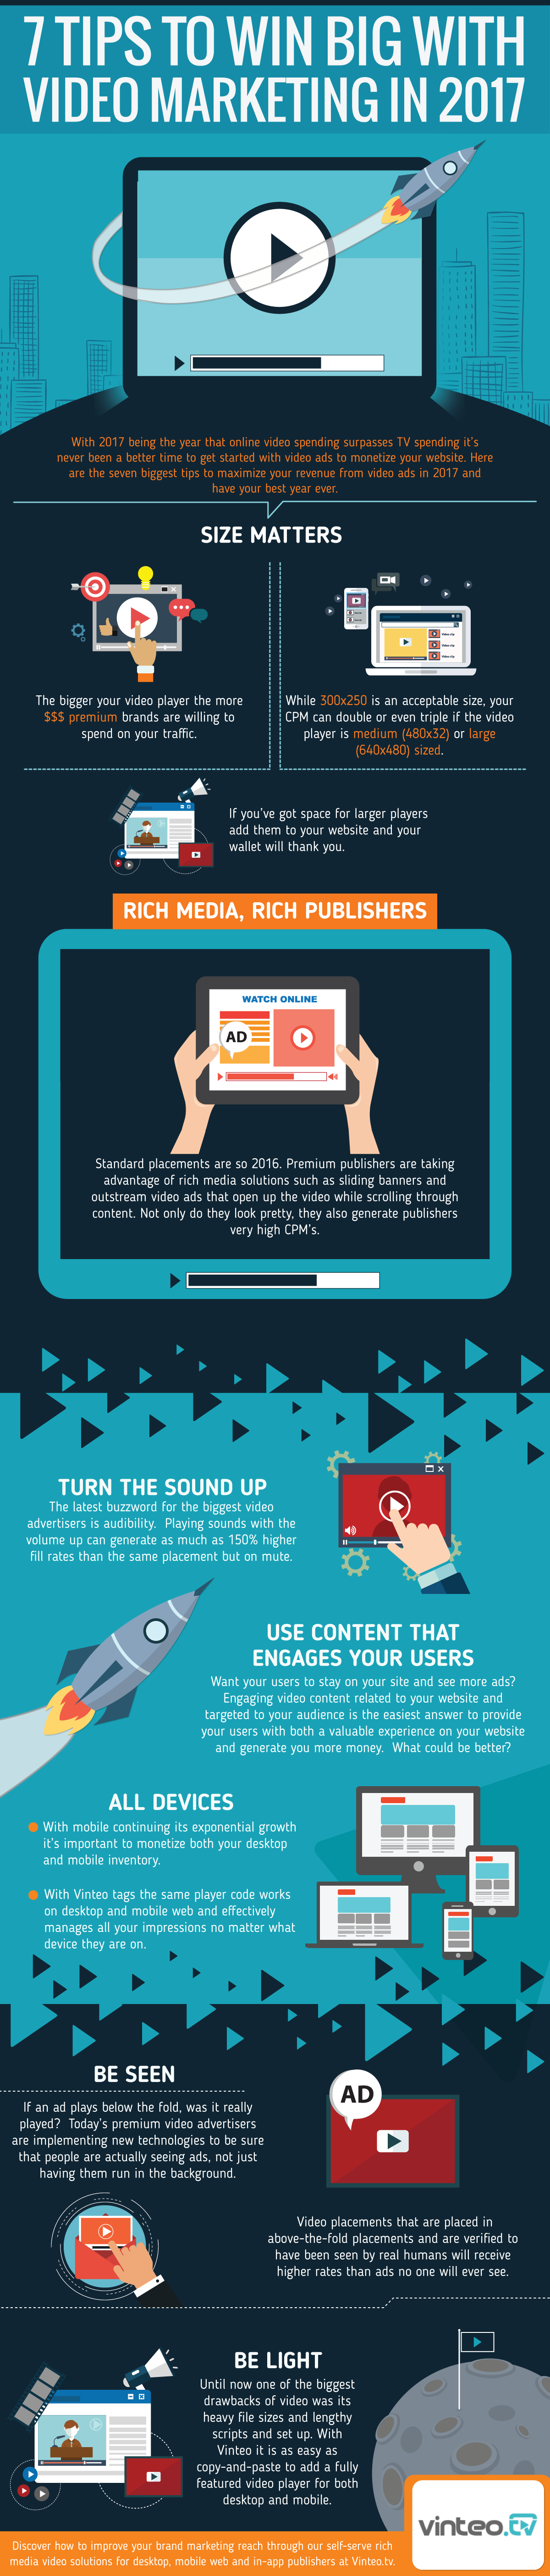 7 Tips to Win Big with Video Marketing in 2017 - #infographic